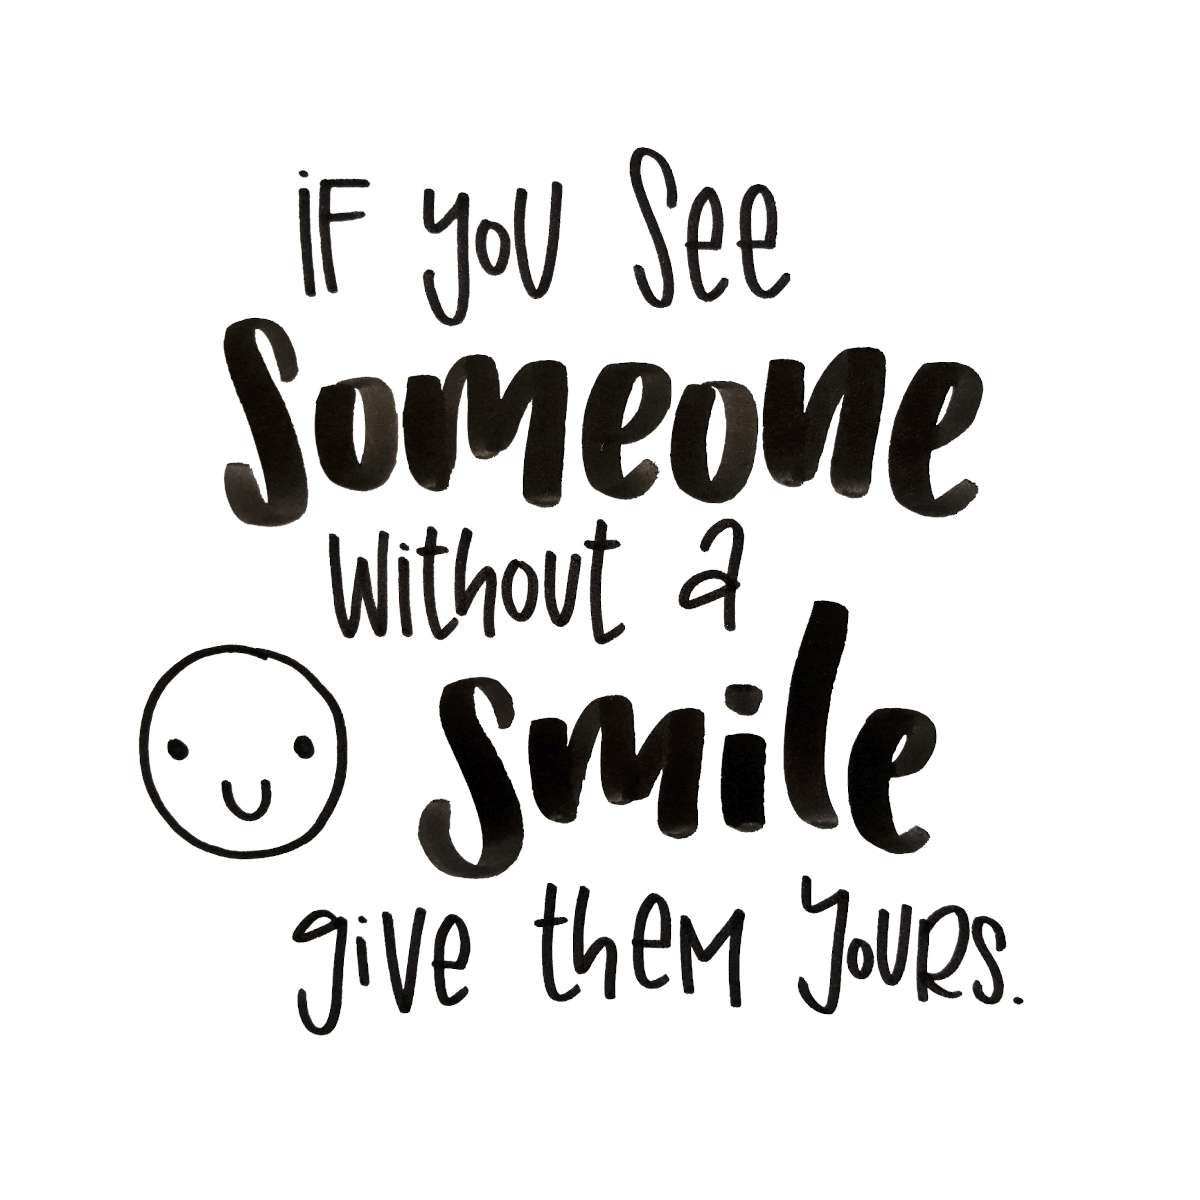 If you see someone without a smile give them yours